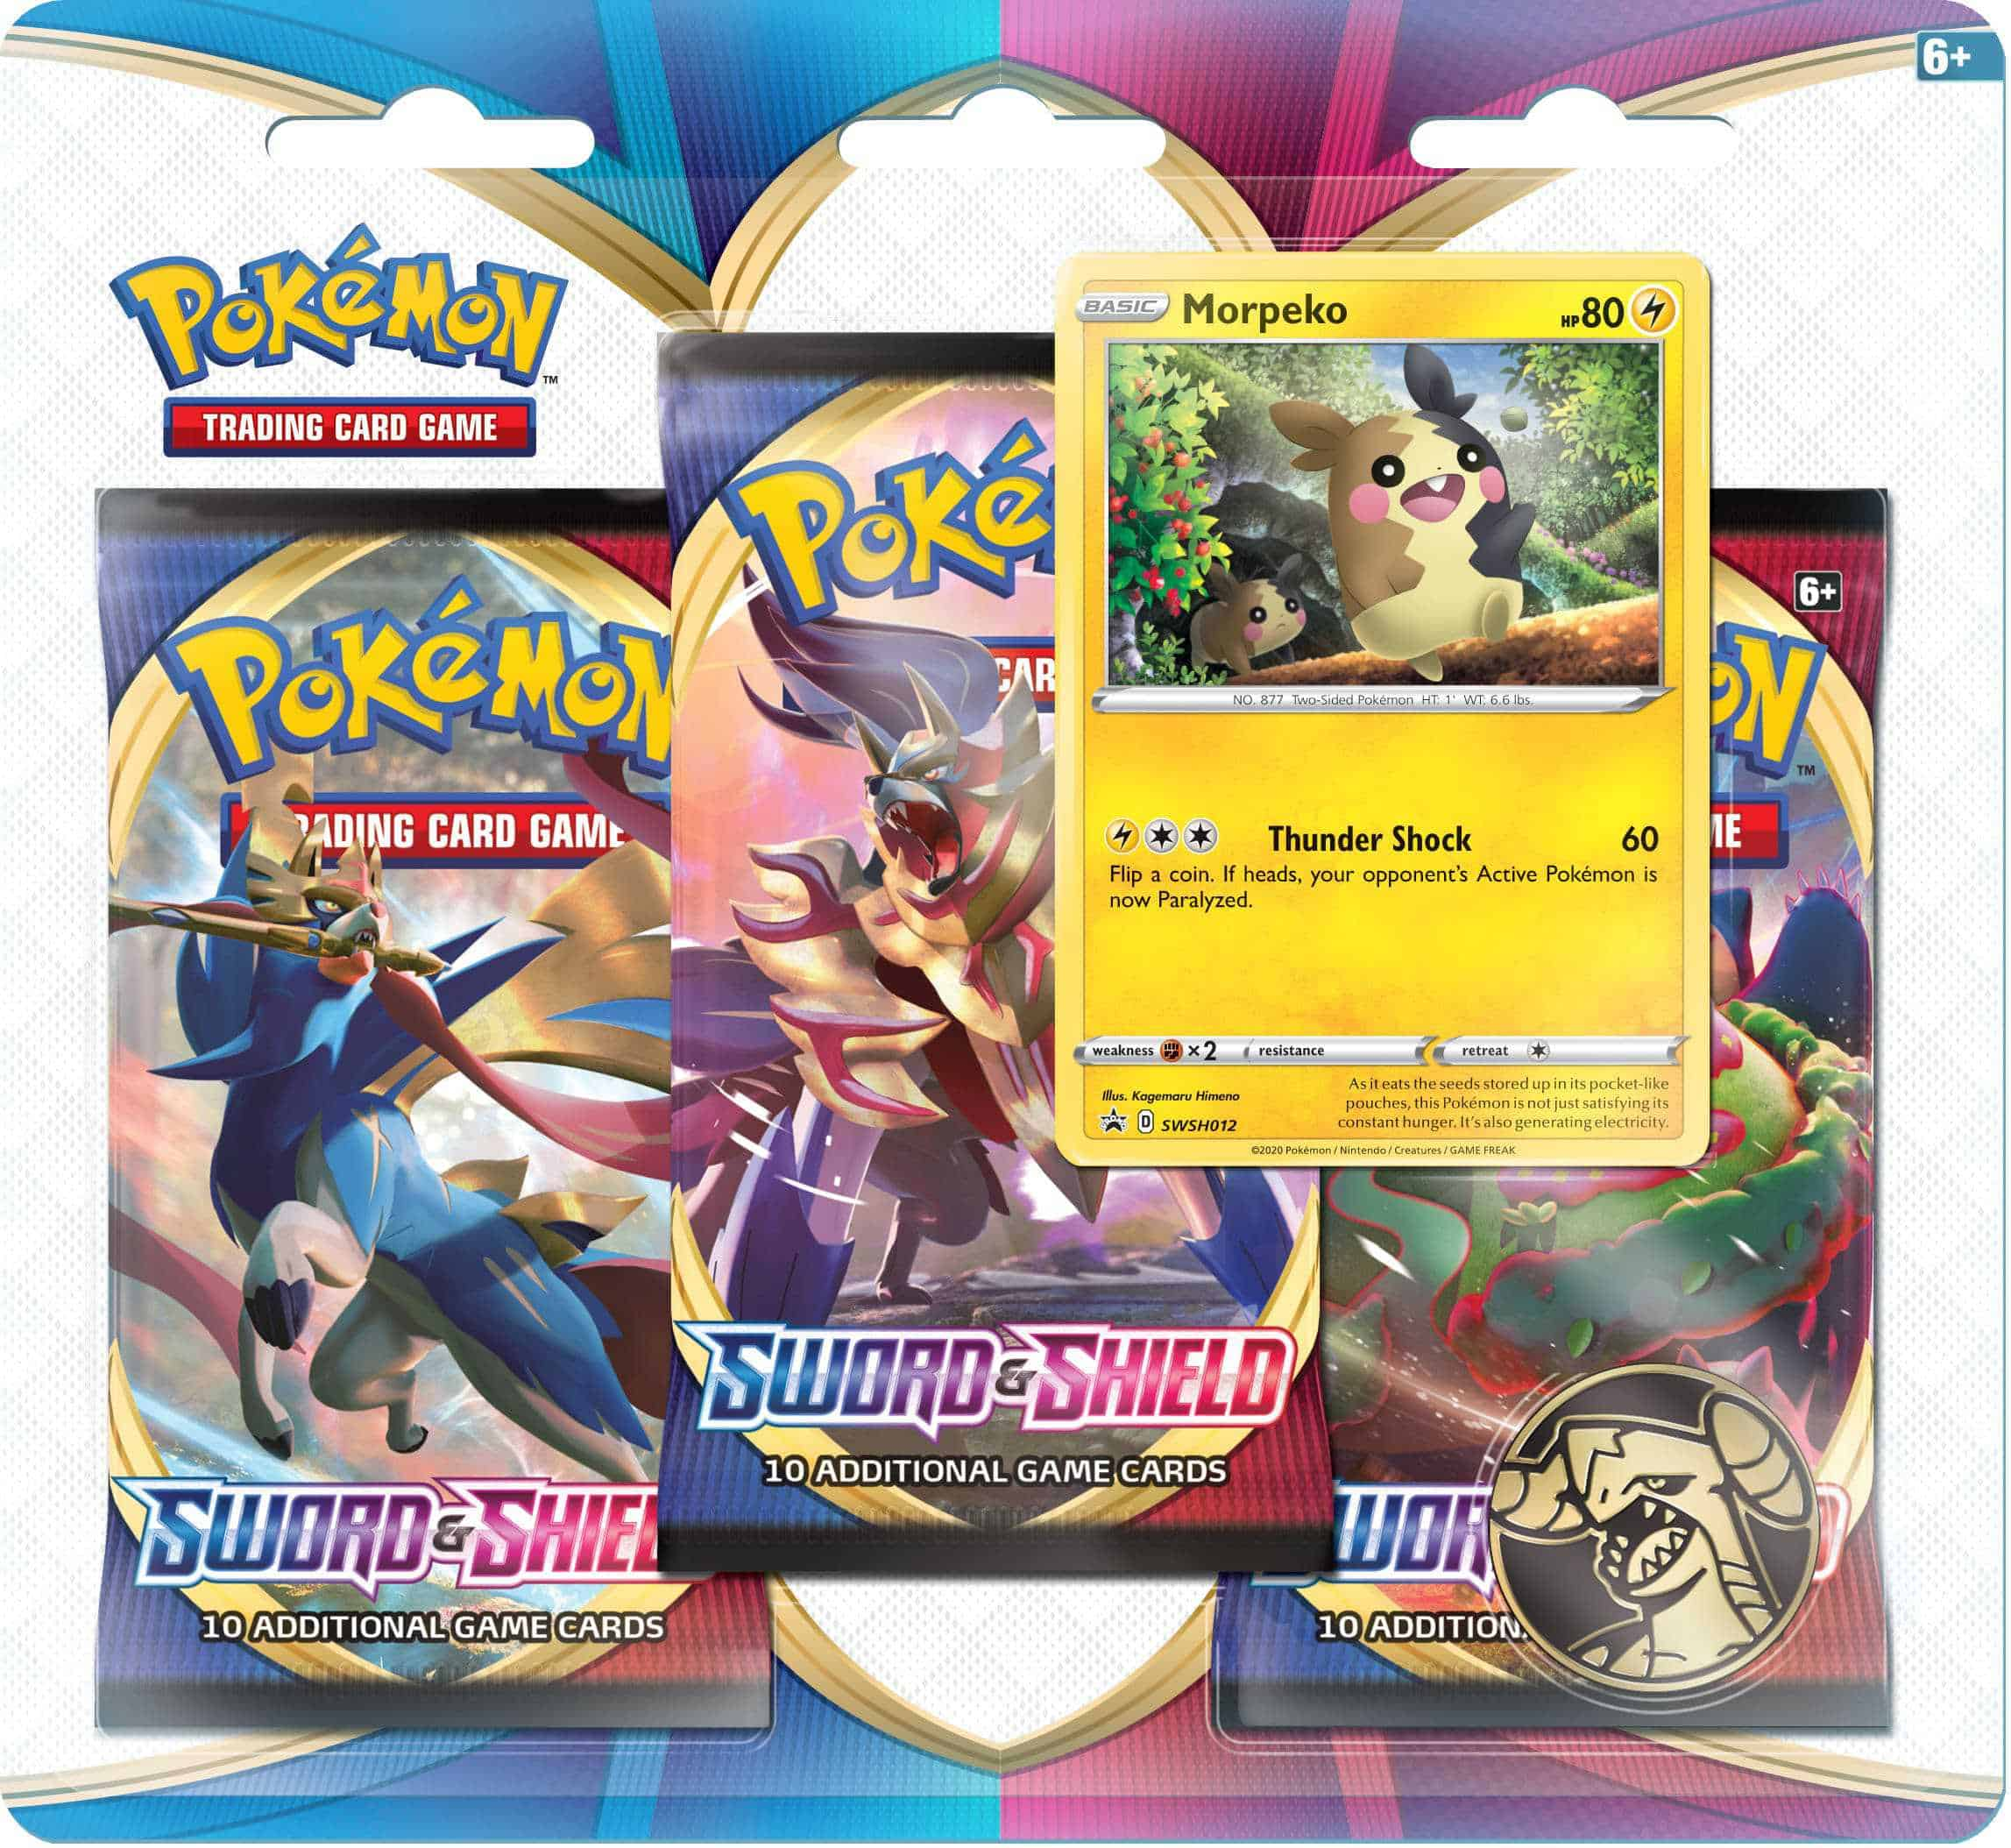 Sword Shield Pokemon TCG SWSH§ 3 Pack Blister Morpeko Promo